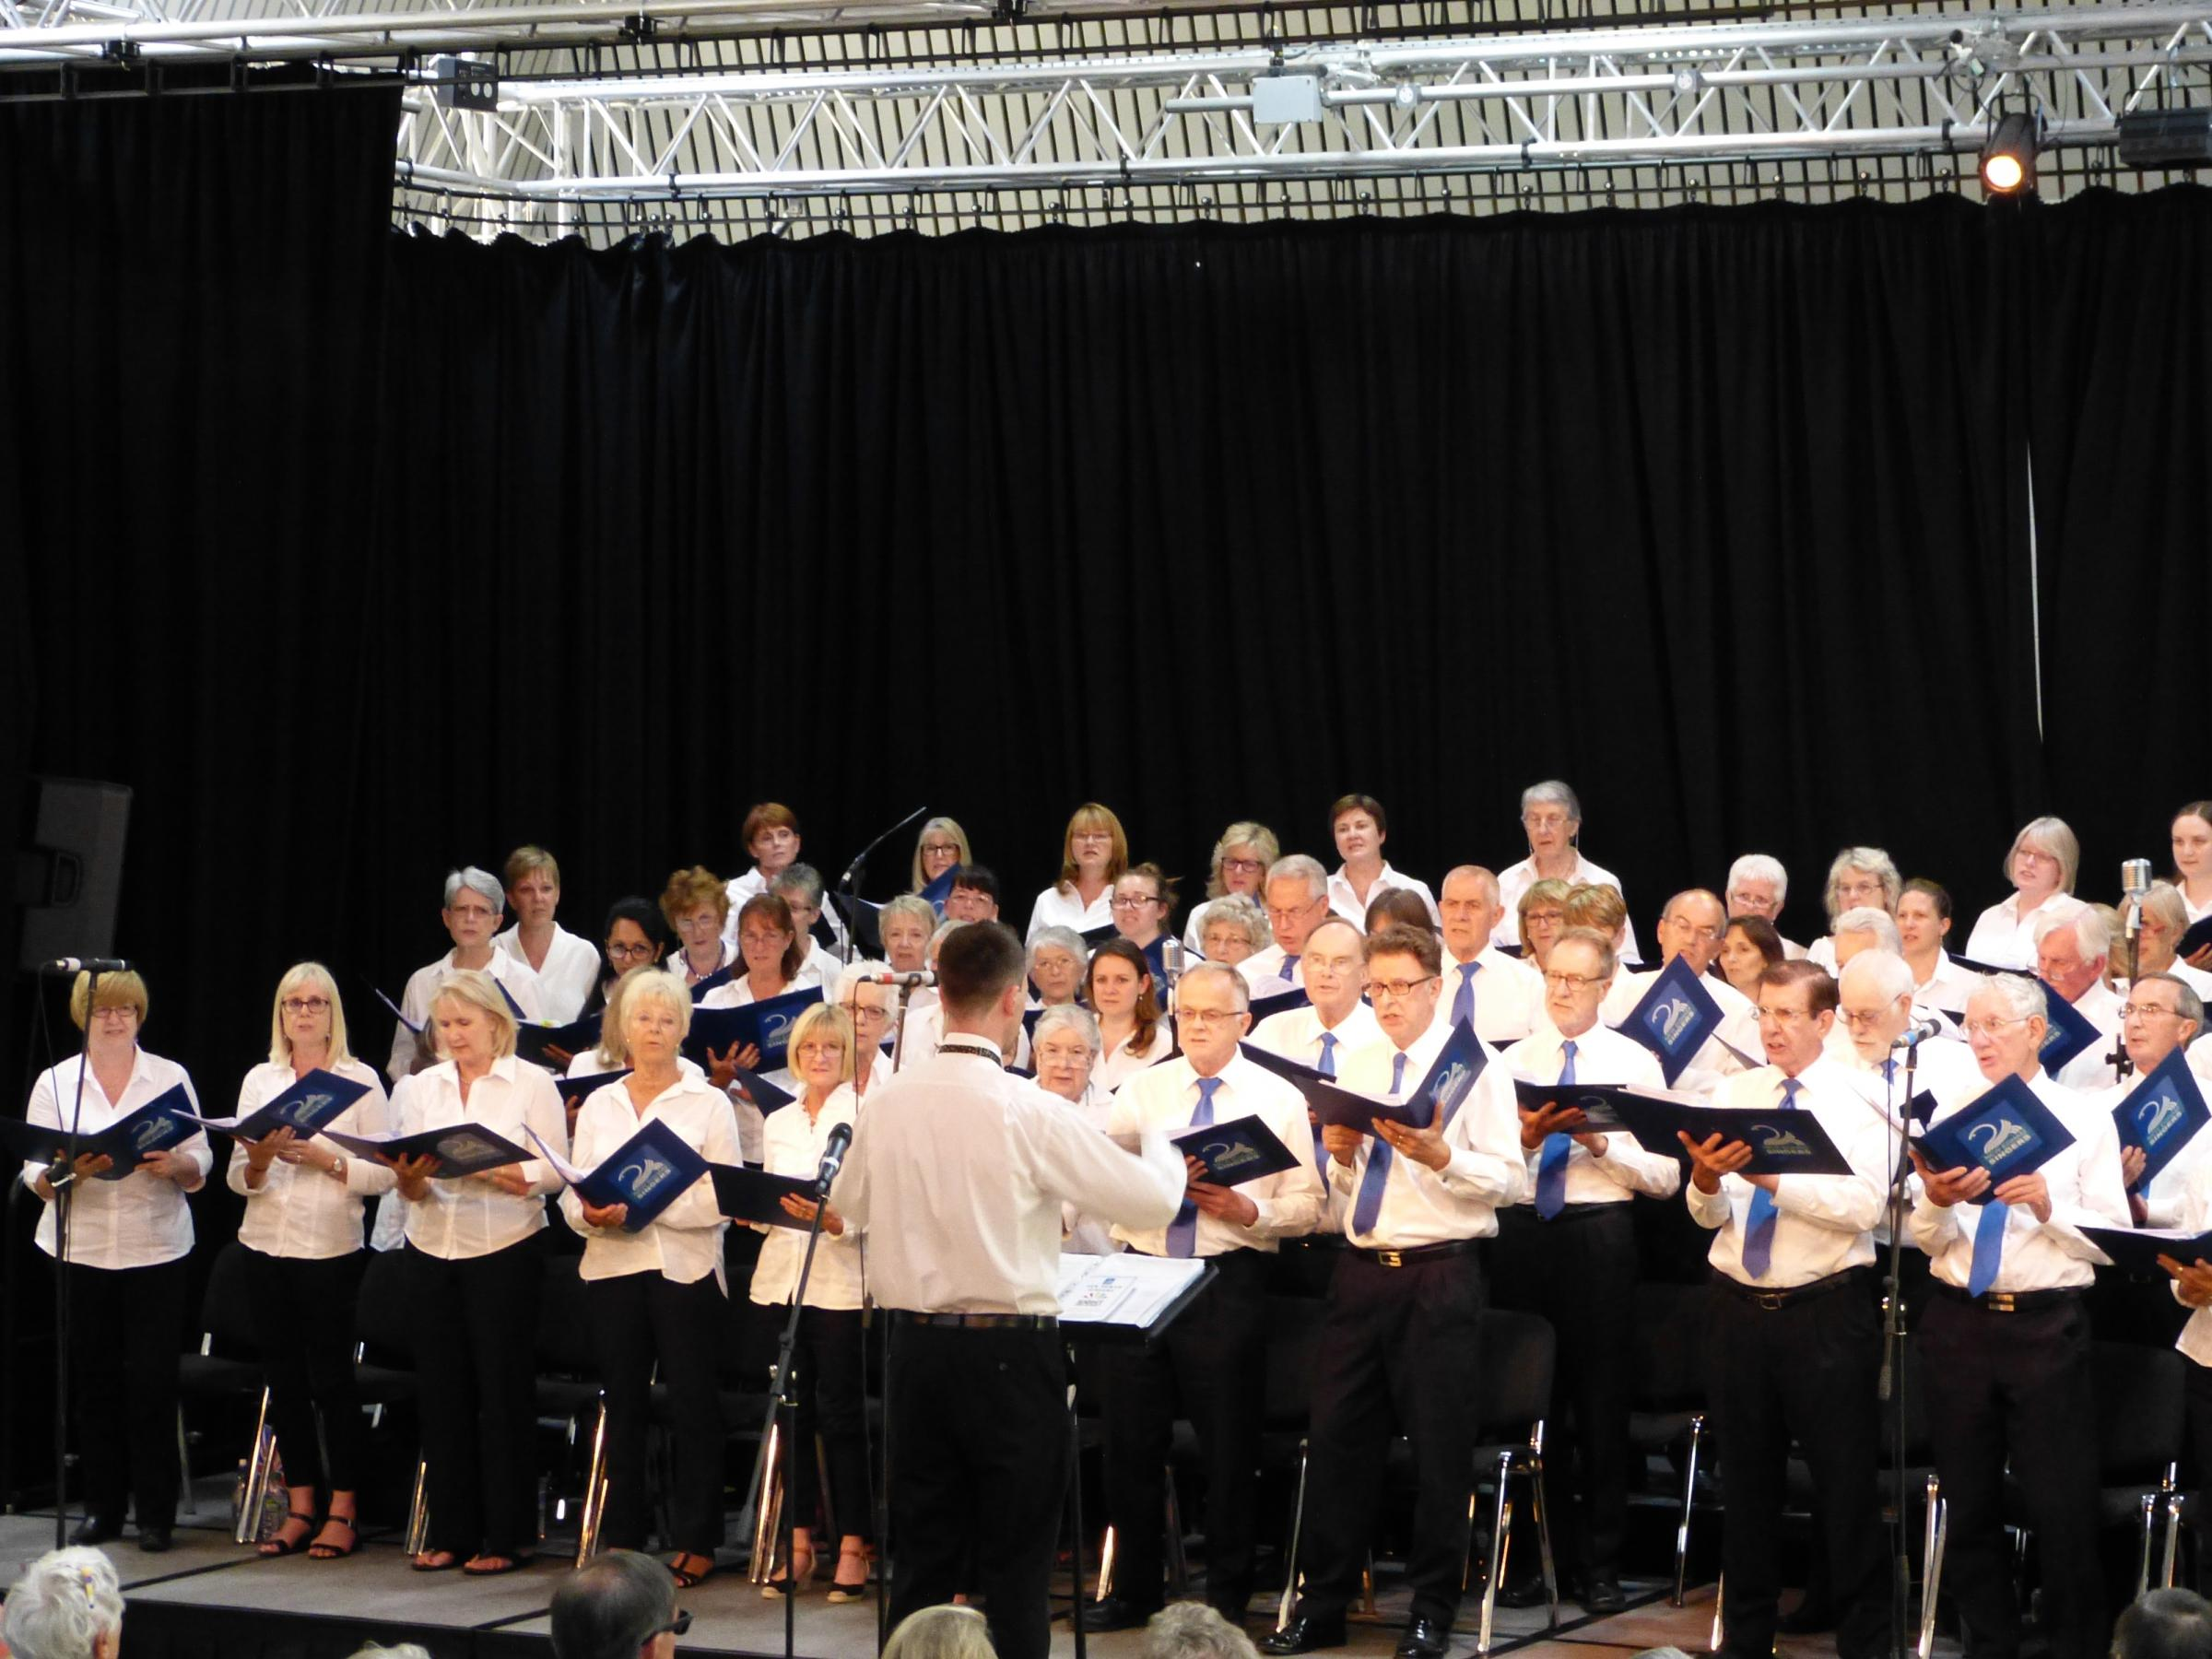 July concert will see Windsor and Egham choirs team up for charity